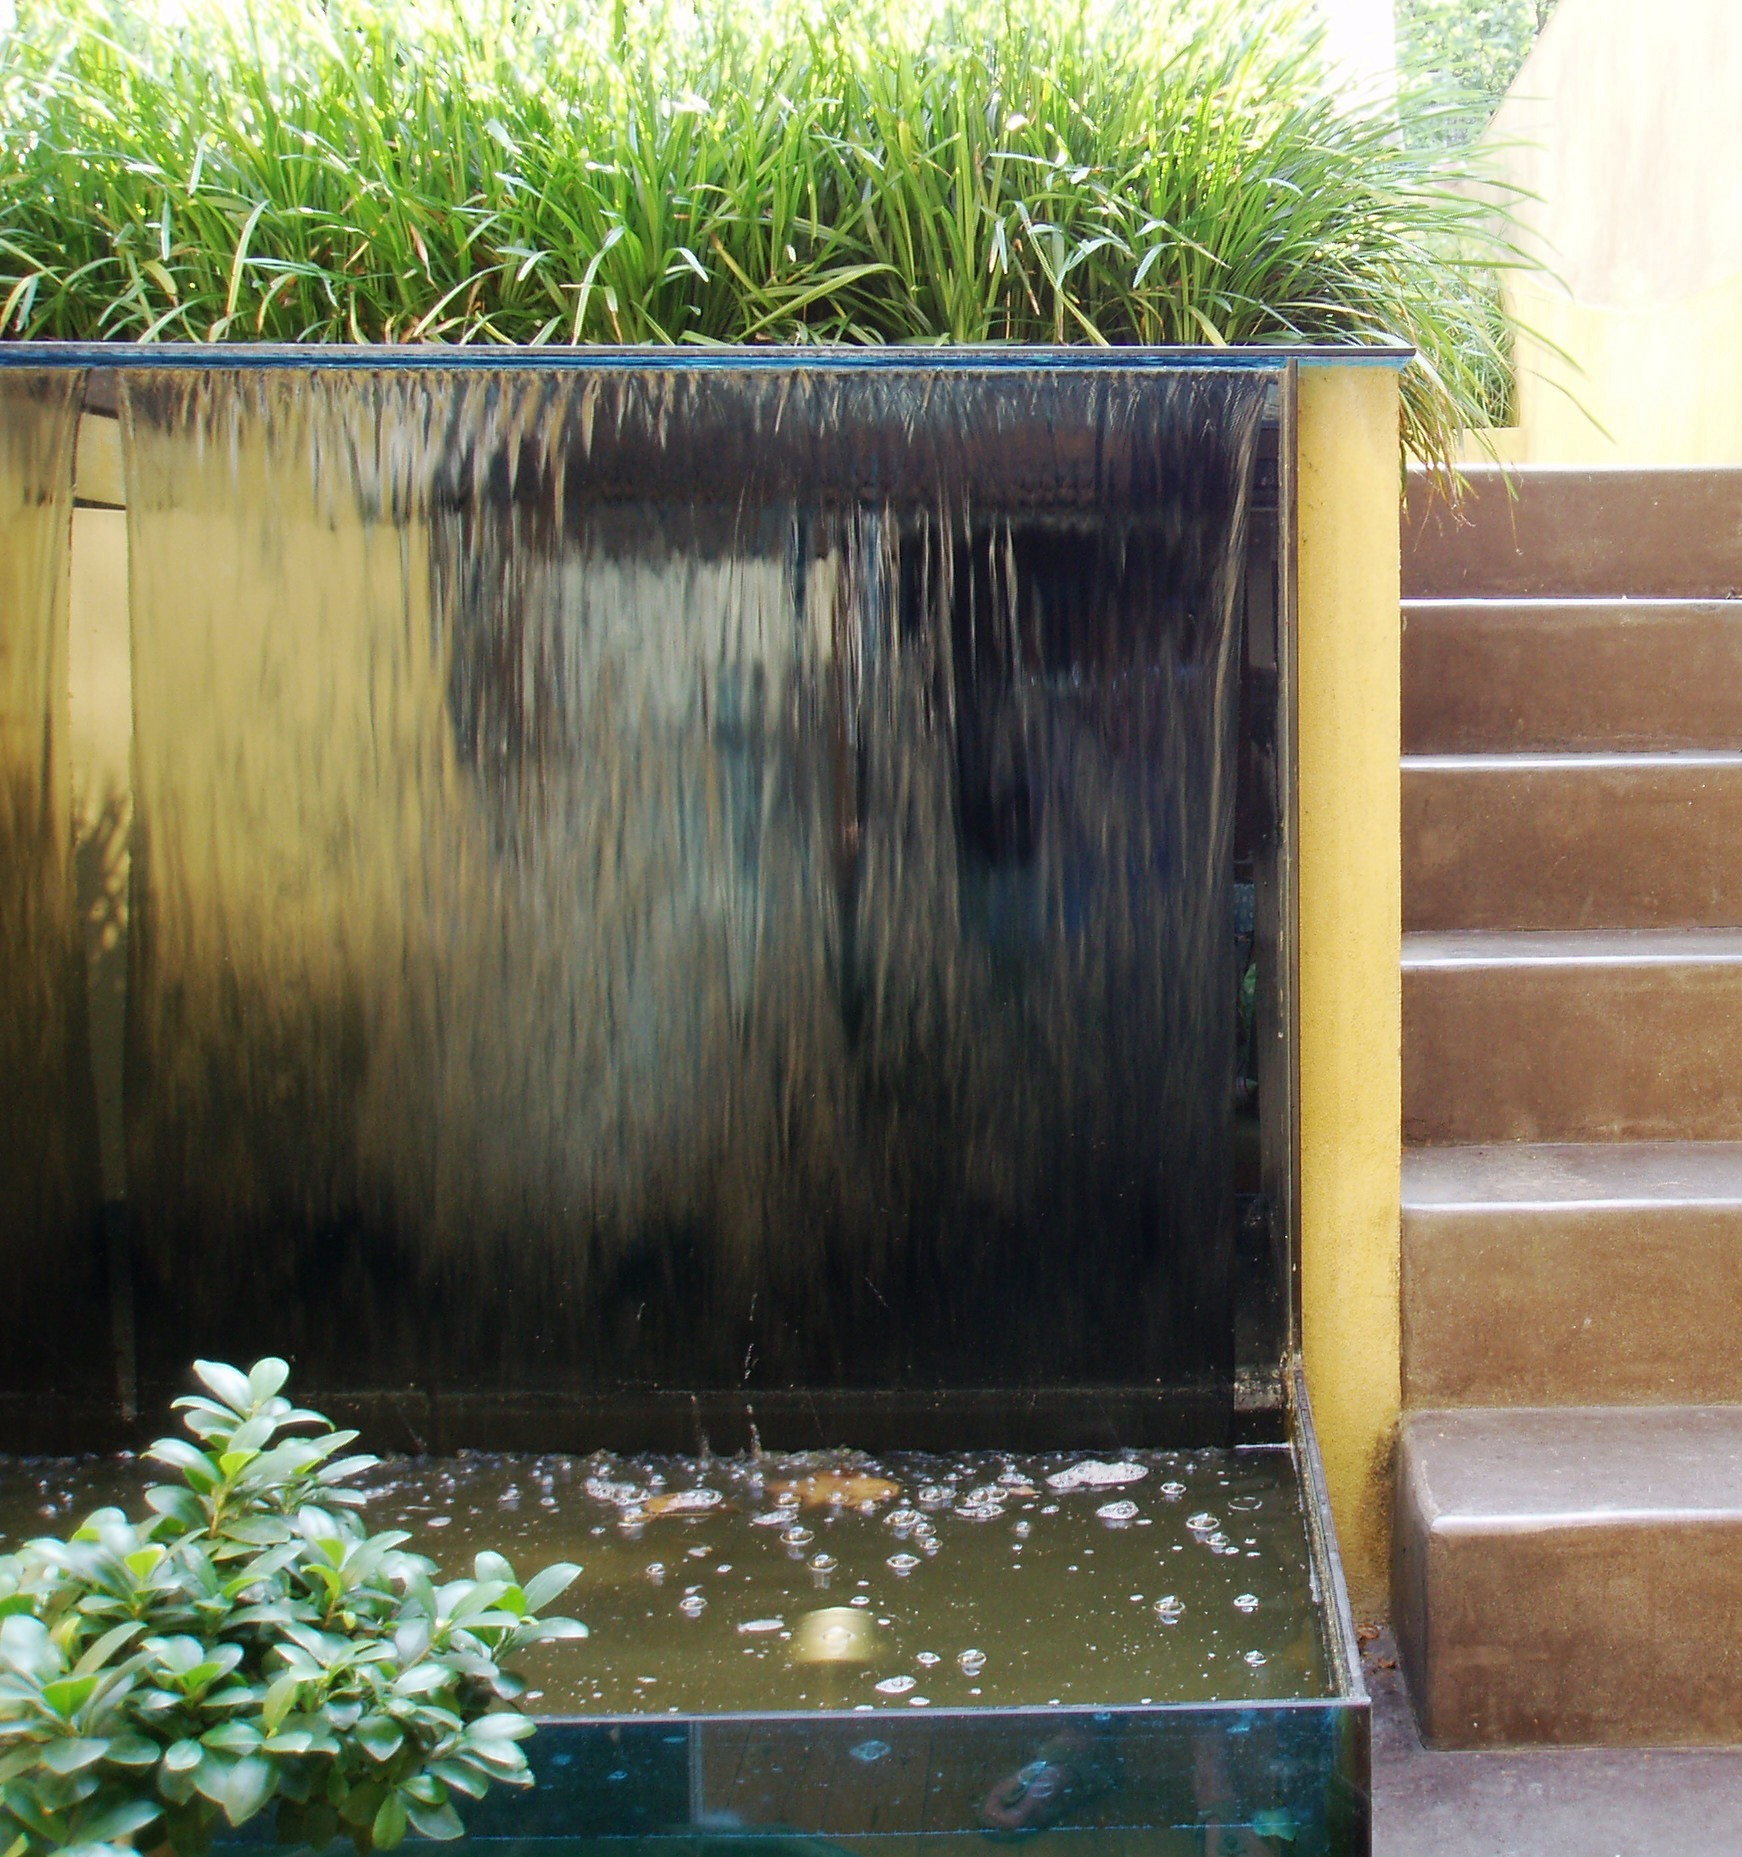 Garden With Glass Water Wall And Polished Concrete Steps